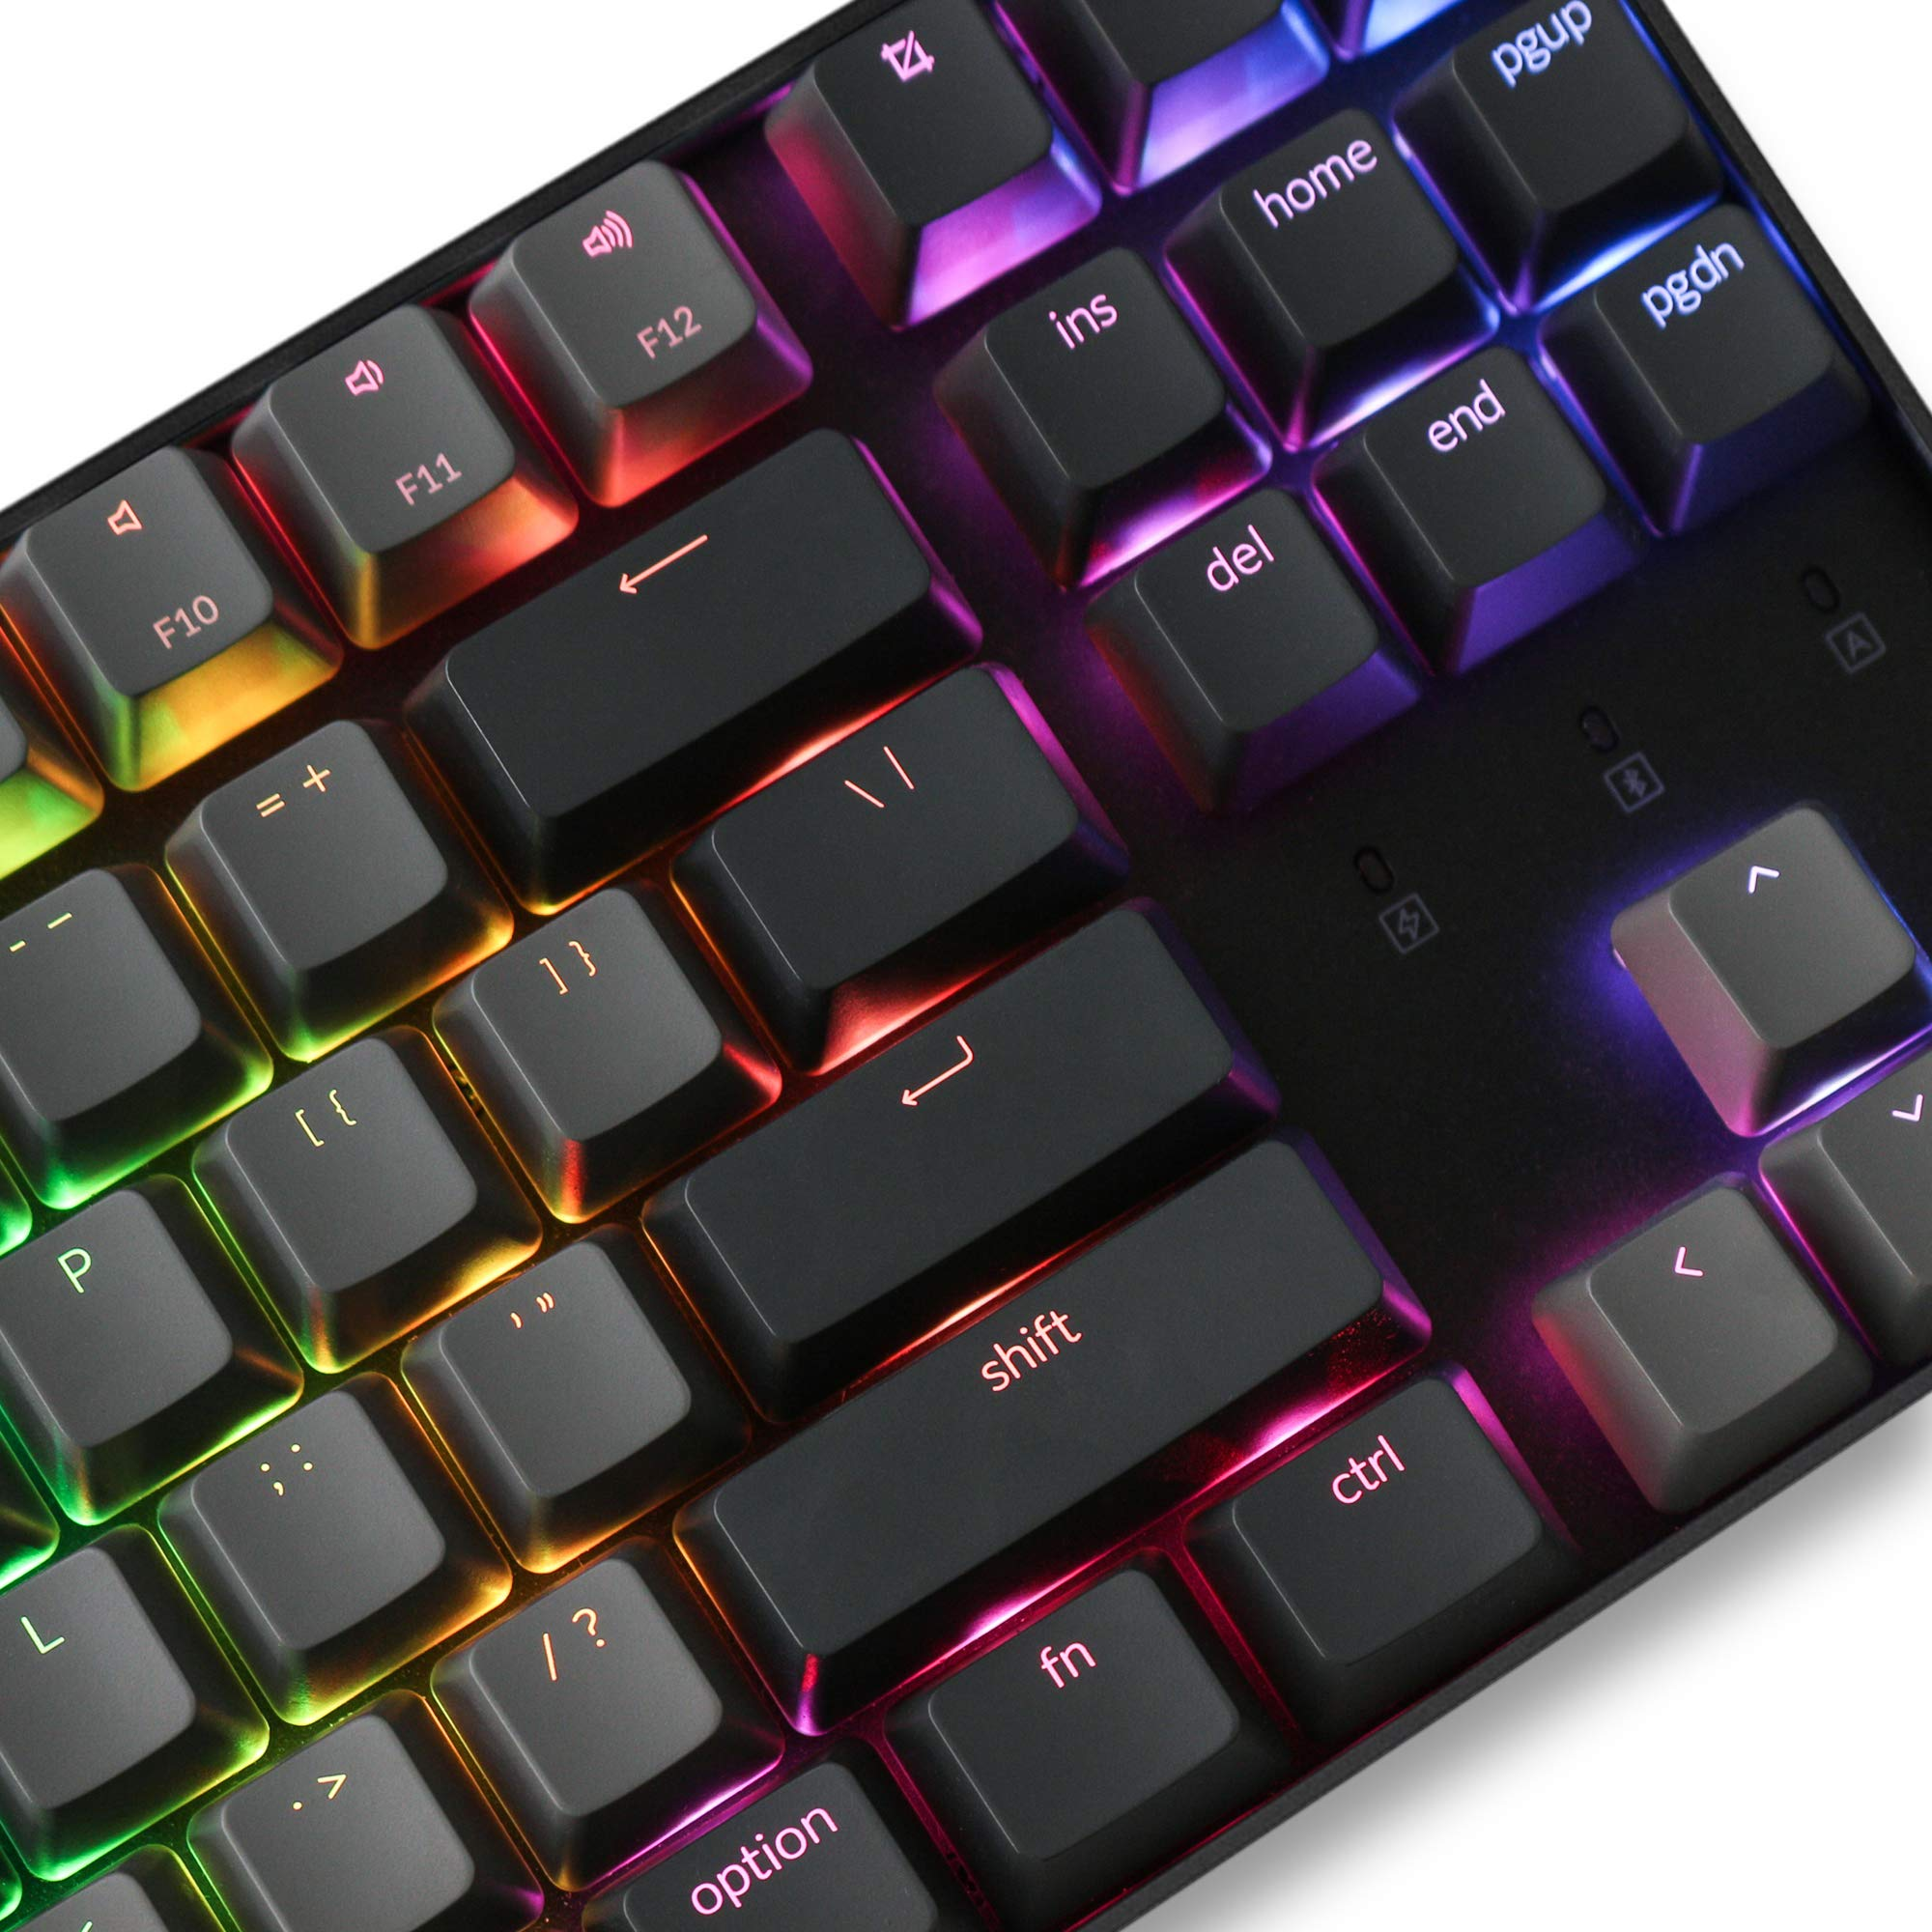 Keychron K8 Tenkeyless Wireless Mechanical Keyboard for Mac, Hot-swappable RGB Backlight, Bluetooth, Multitasking, Type-C Wired Gaming Keyboard for Windows with Gateron Brown Switch